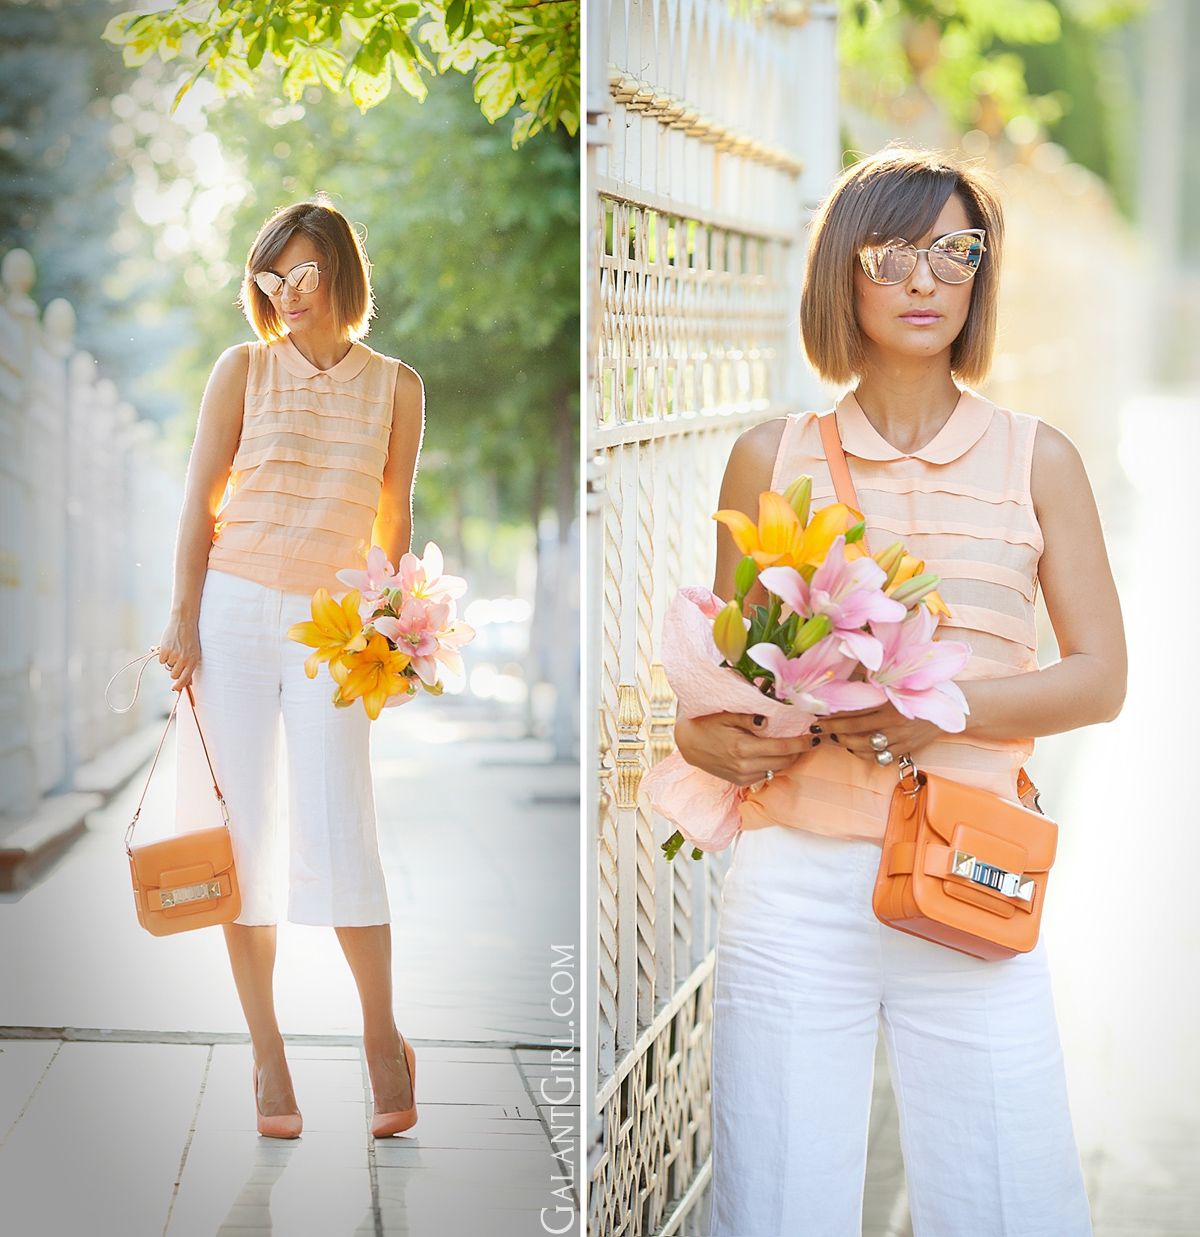 culottes-summer-outfit-orange-proenza-schouler-ps11-fashion-blogger-galant-girl